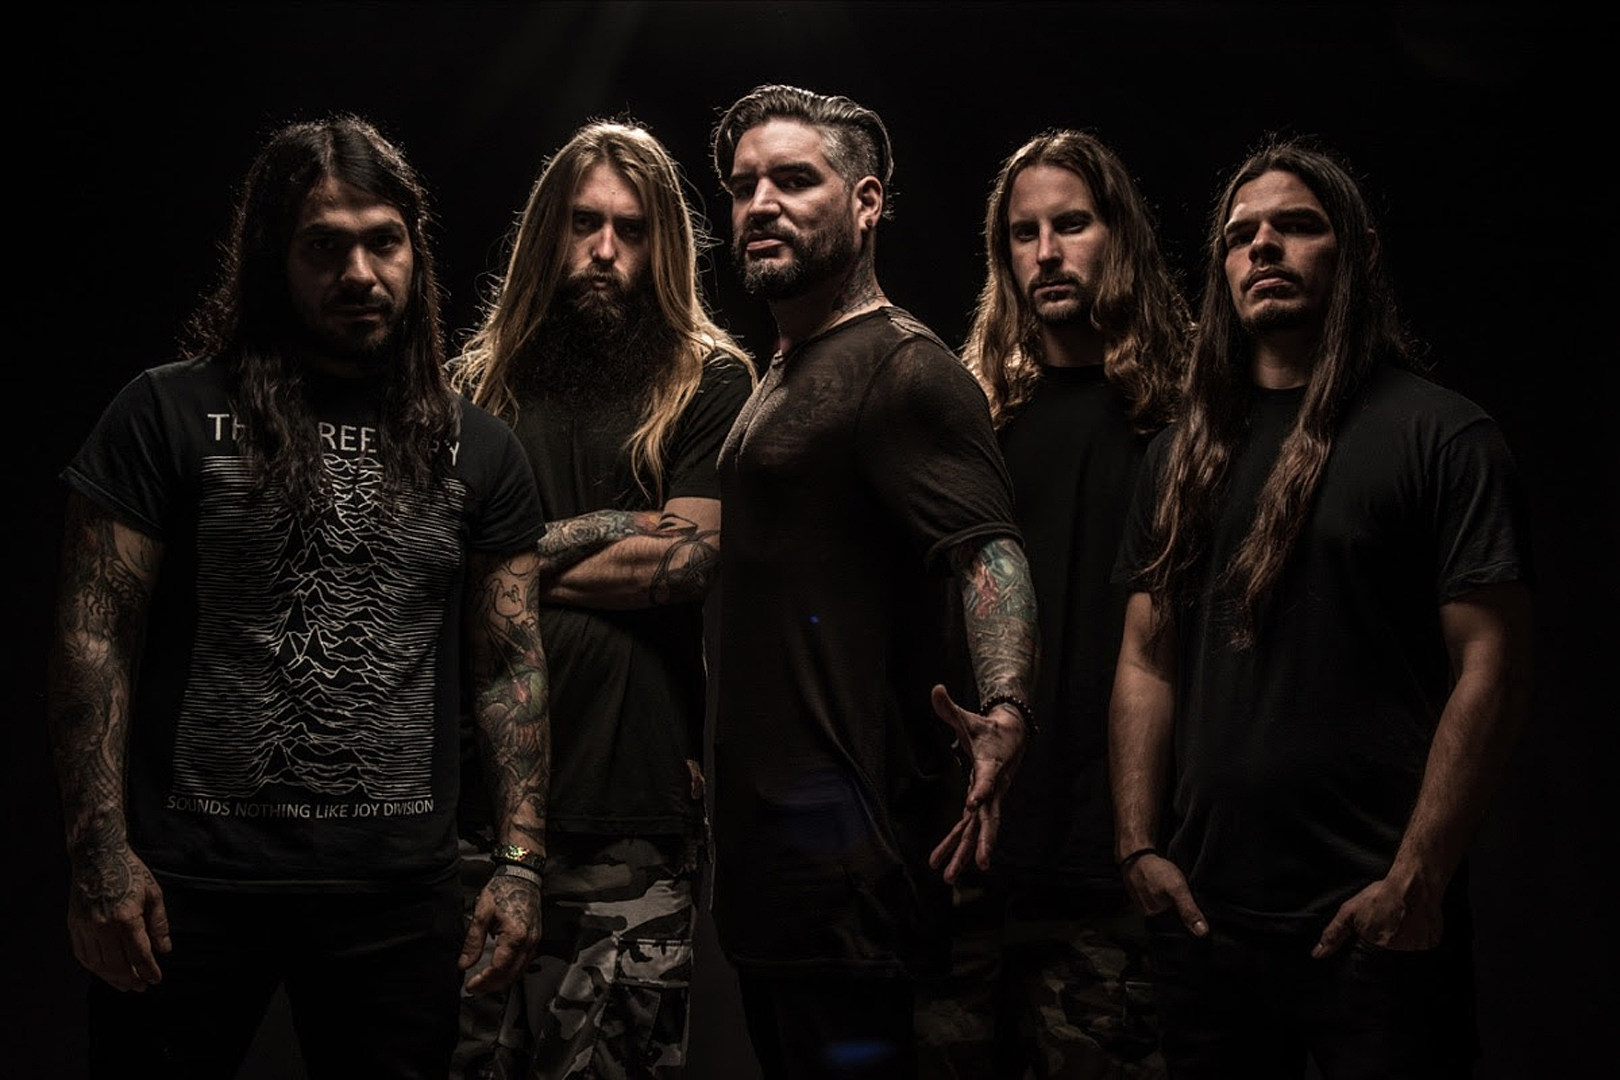 Eddie Hermida Issues Apology After Sexual Misconduct Claims